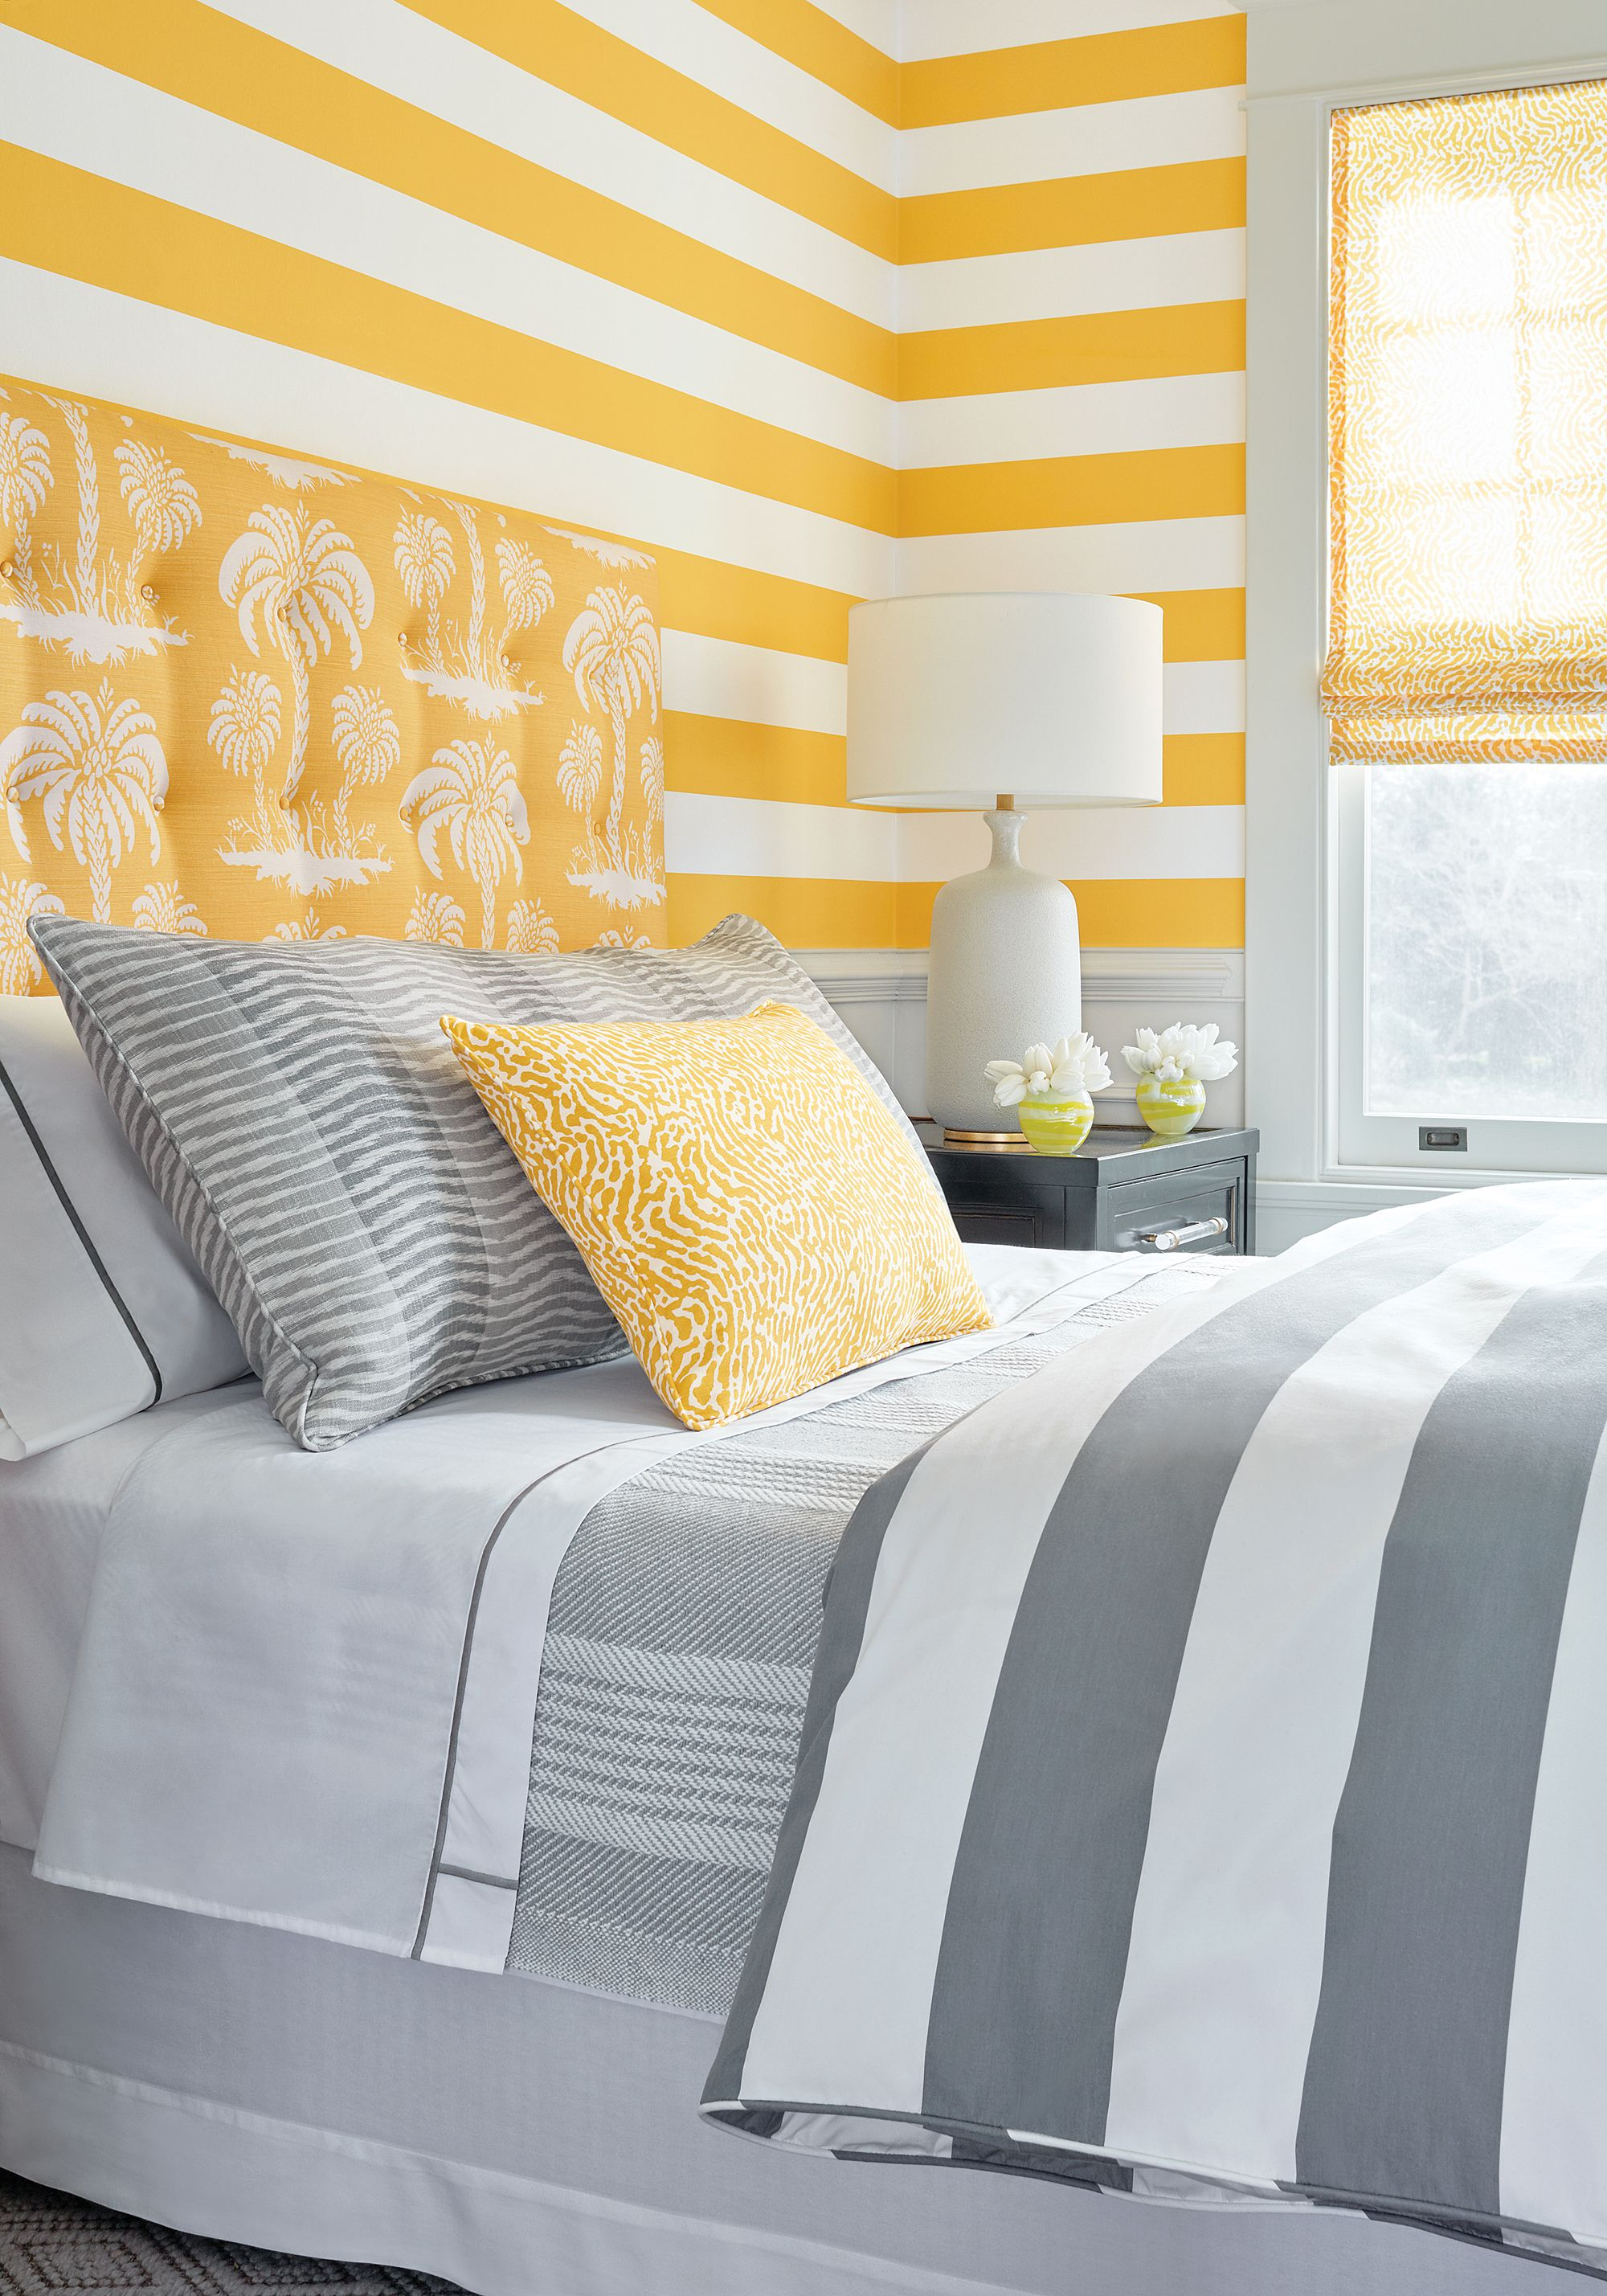 Summer Stripe from Summer House Collection | THIBAUT | Pinterest ...